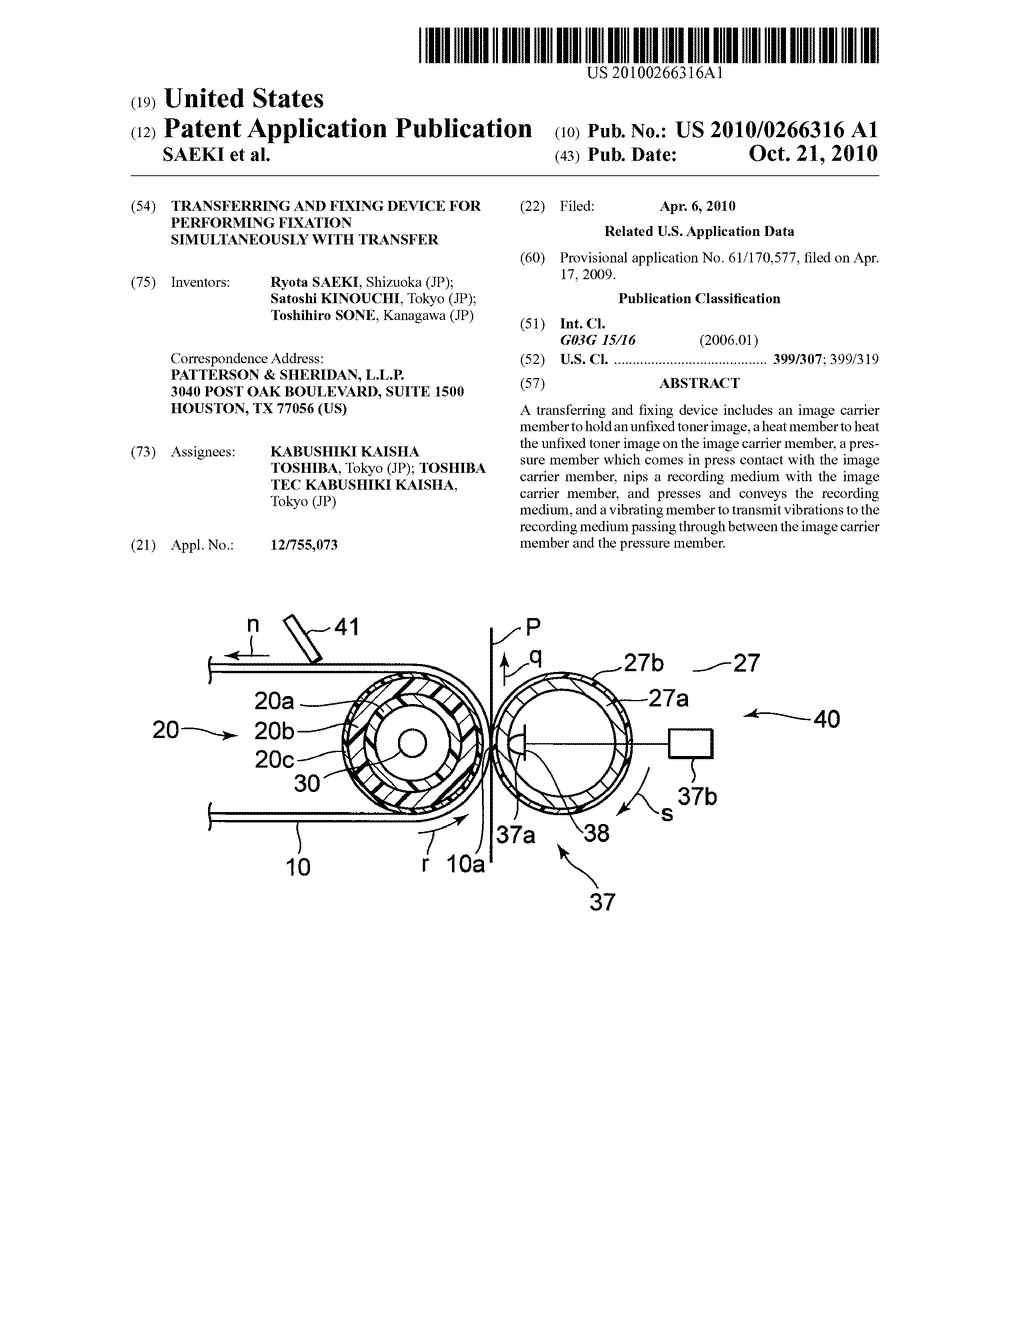 TRANSFERRING AND FIXING DEVICE FOR PERFORMING FIXATION SIMULTANEOUSLY WITH TRANSFER - diagram, schematic, and image 01